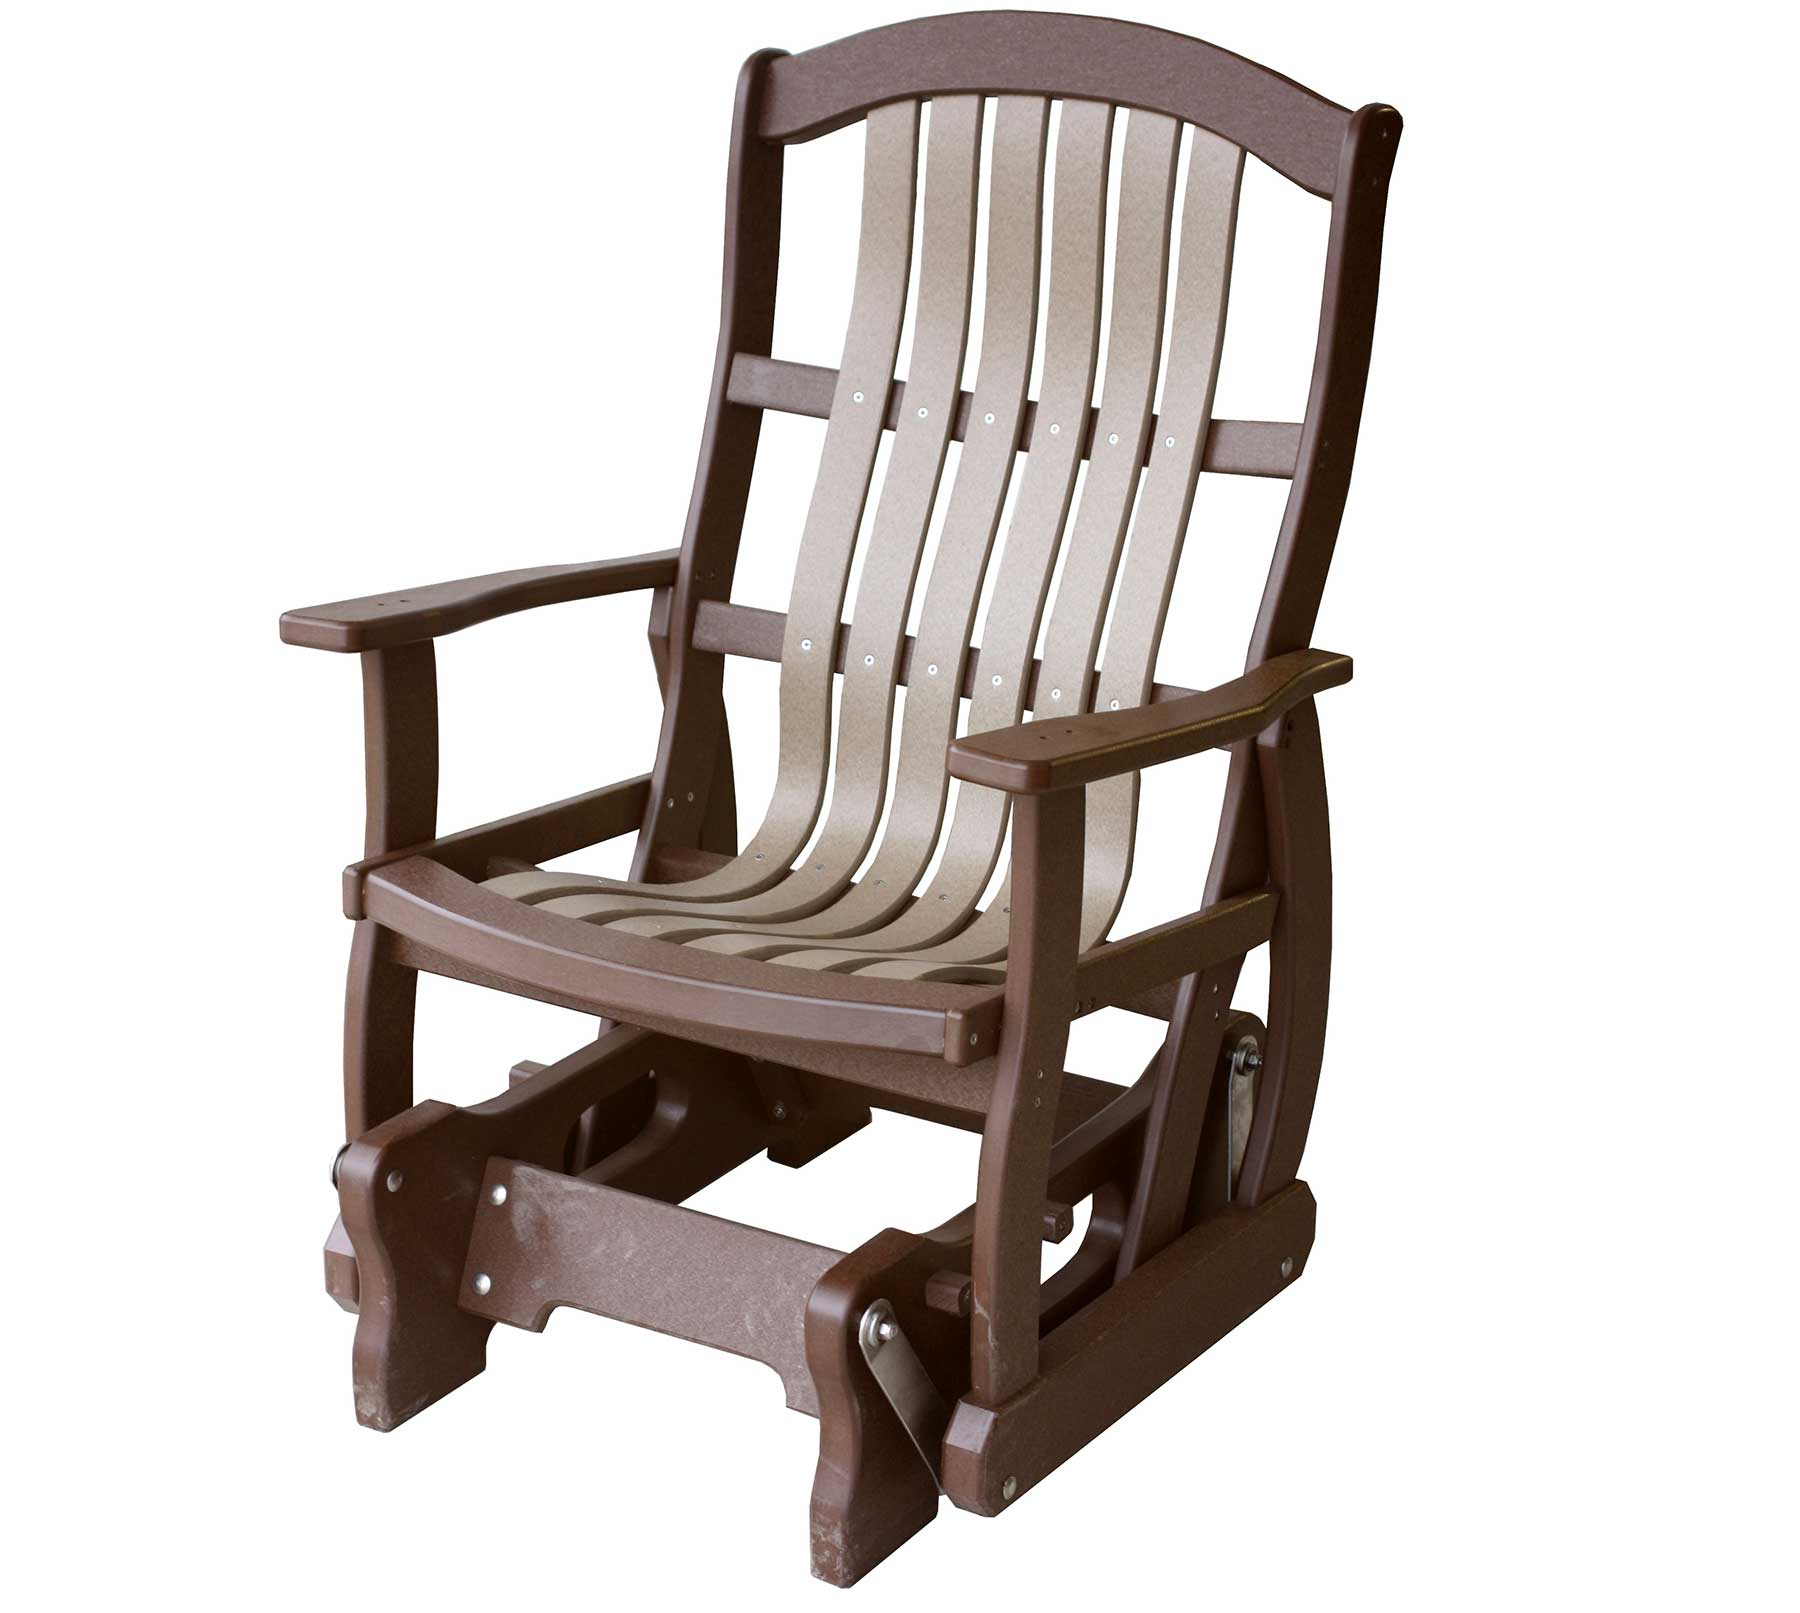 The Classic Cottage Glider From Signature Fine Furnishings